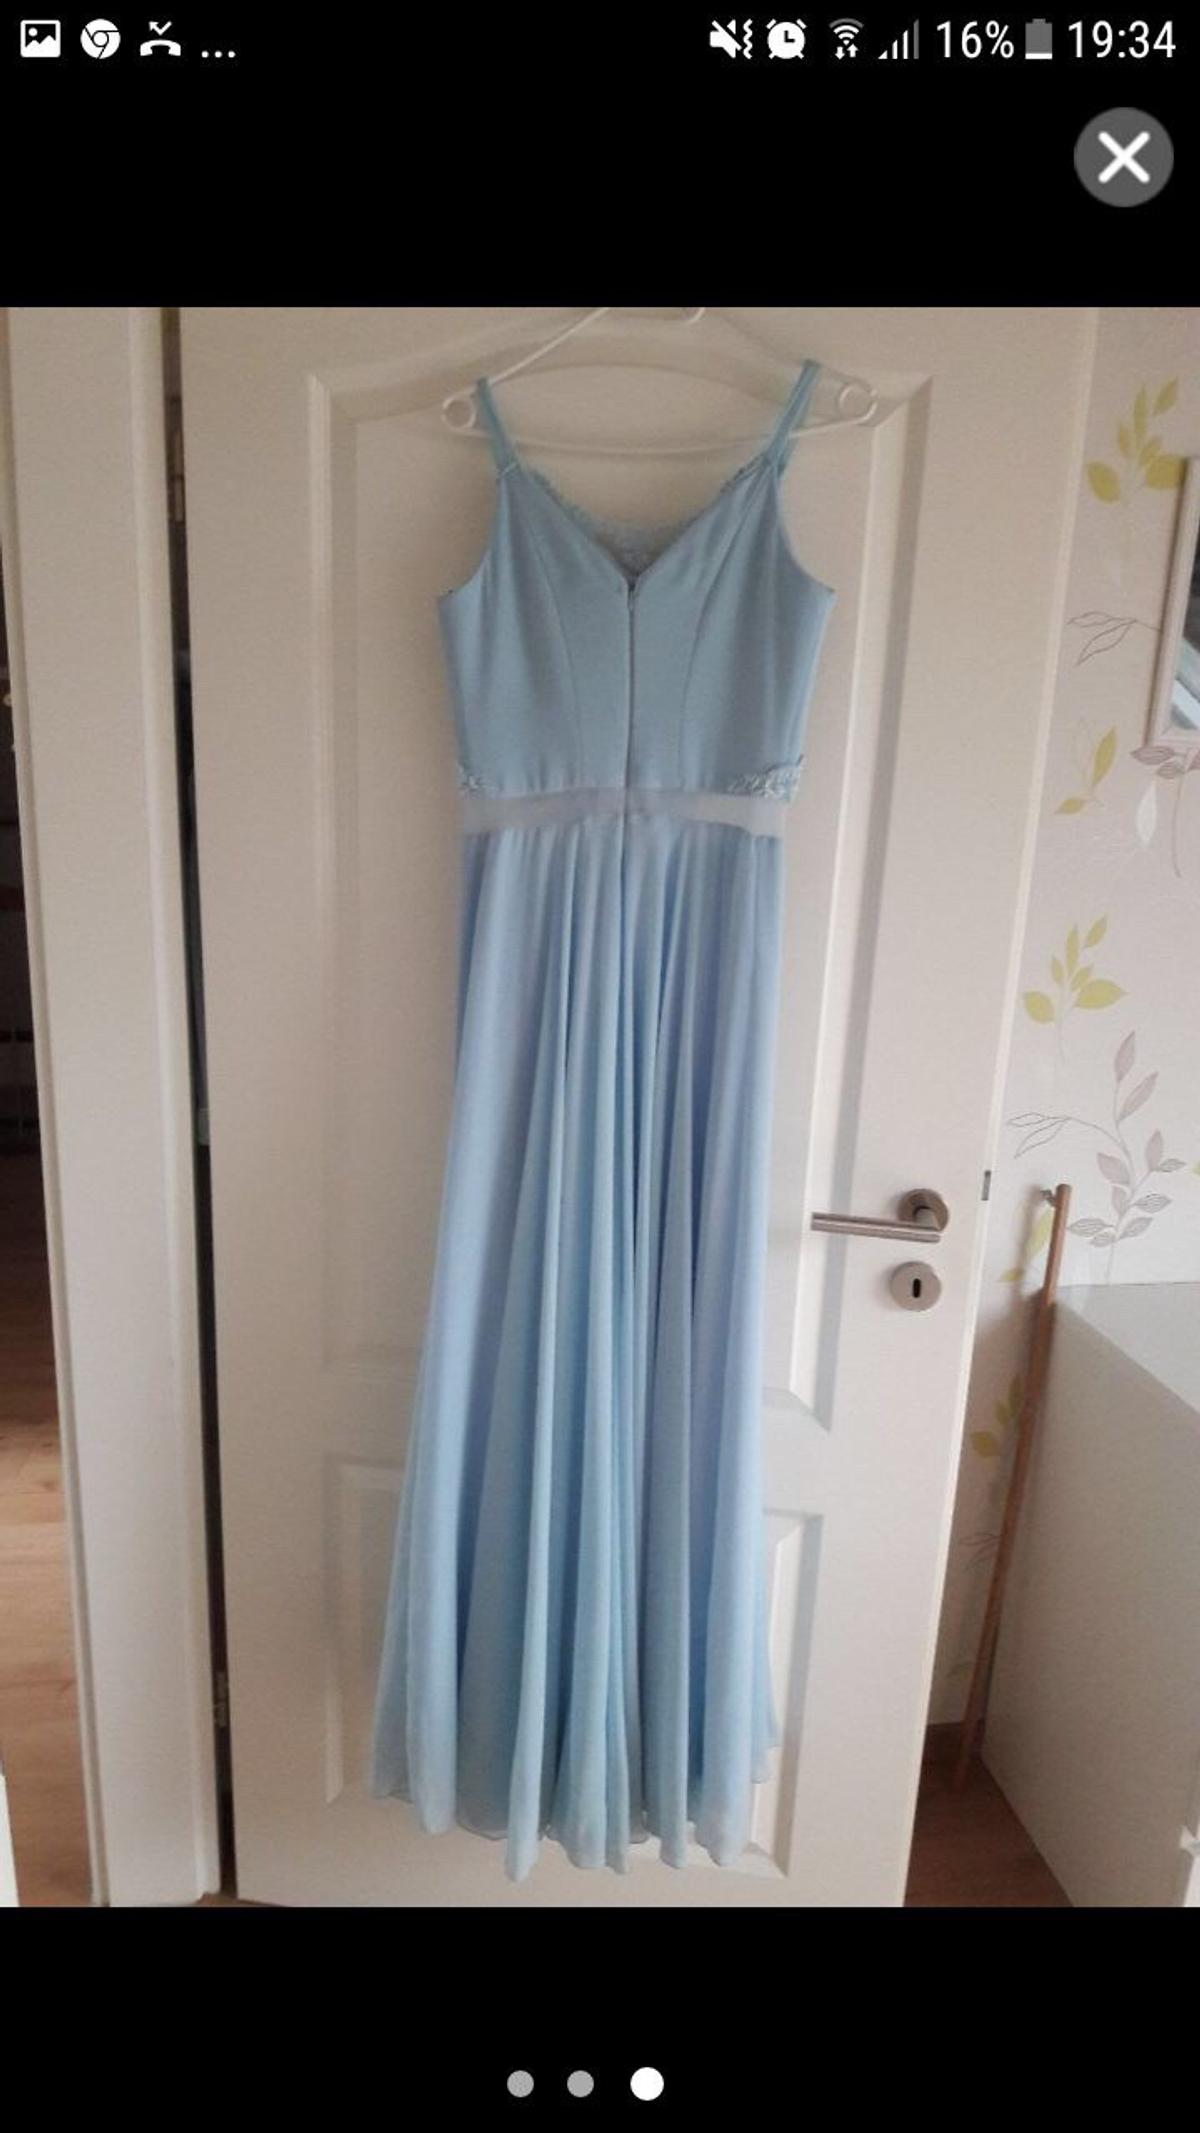 babyblaues abendkleid in 51103 köln for €115.00 for sale